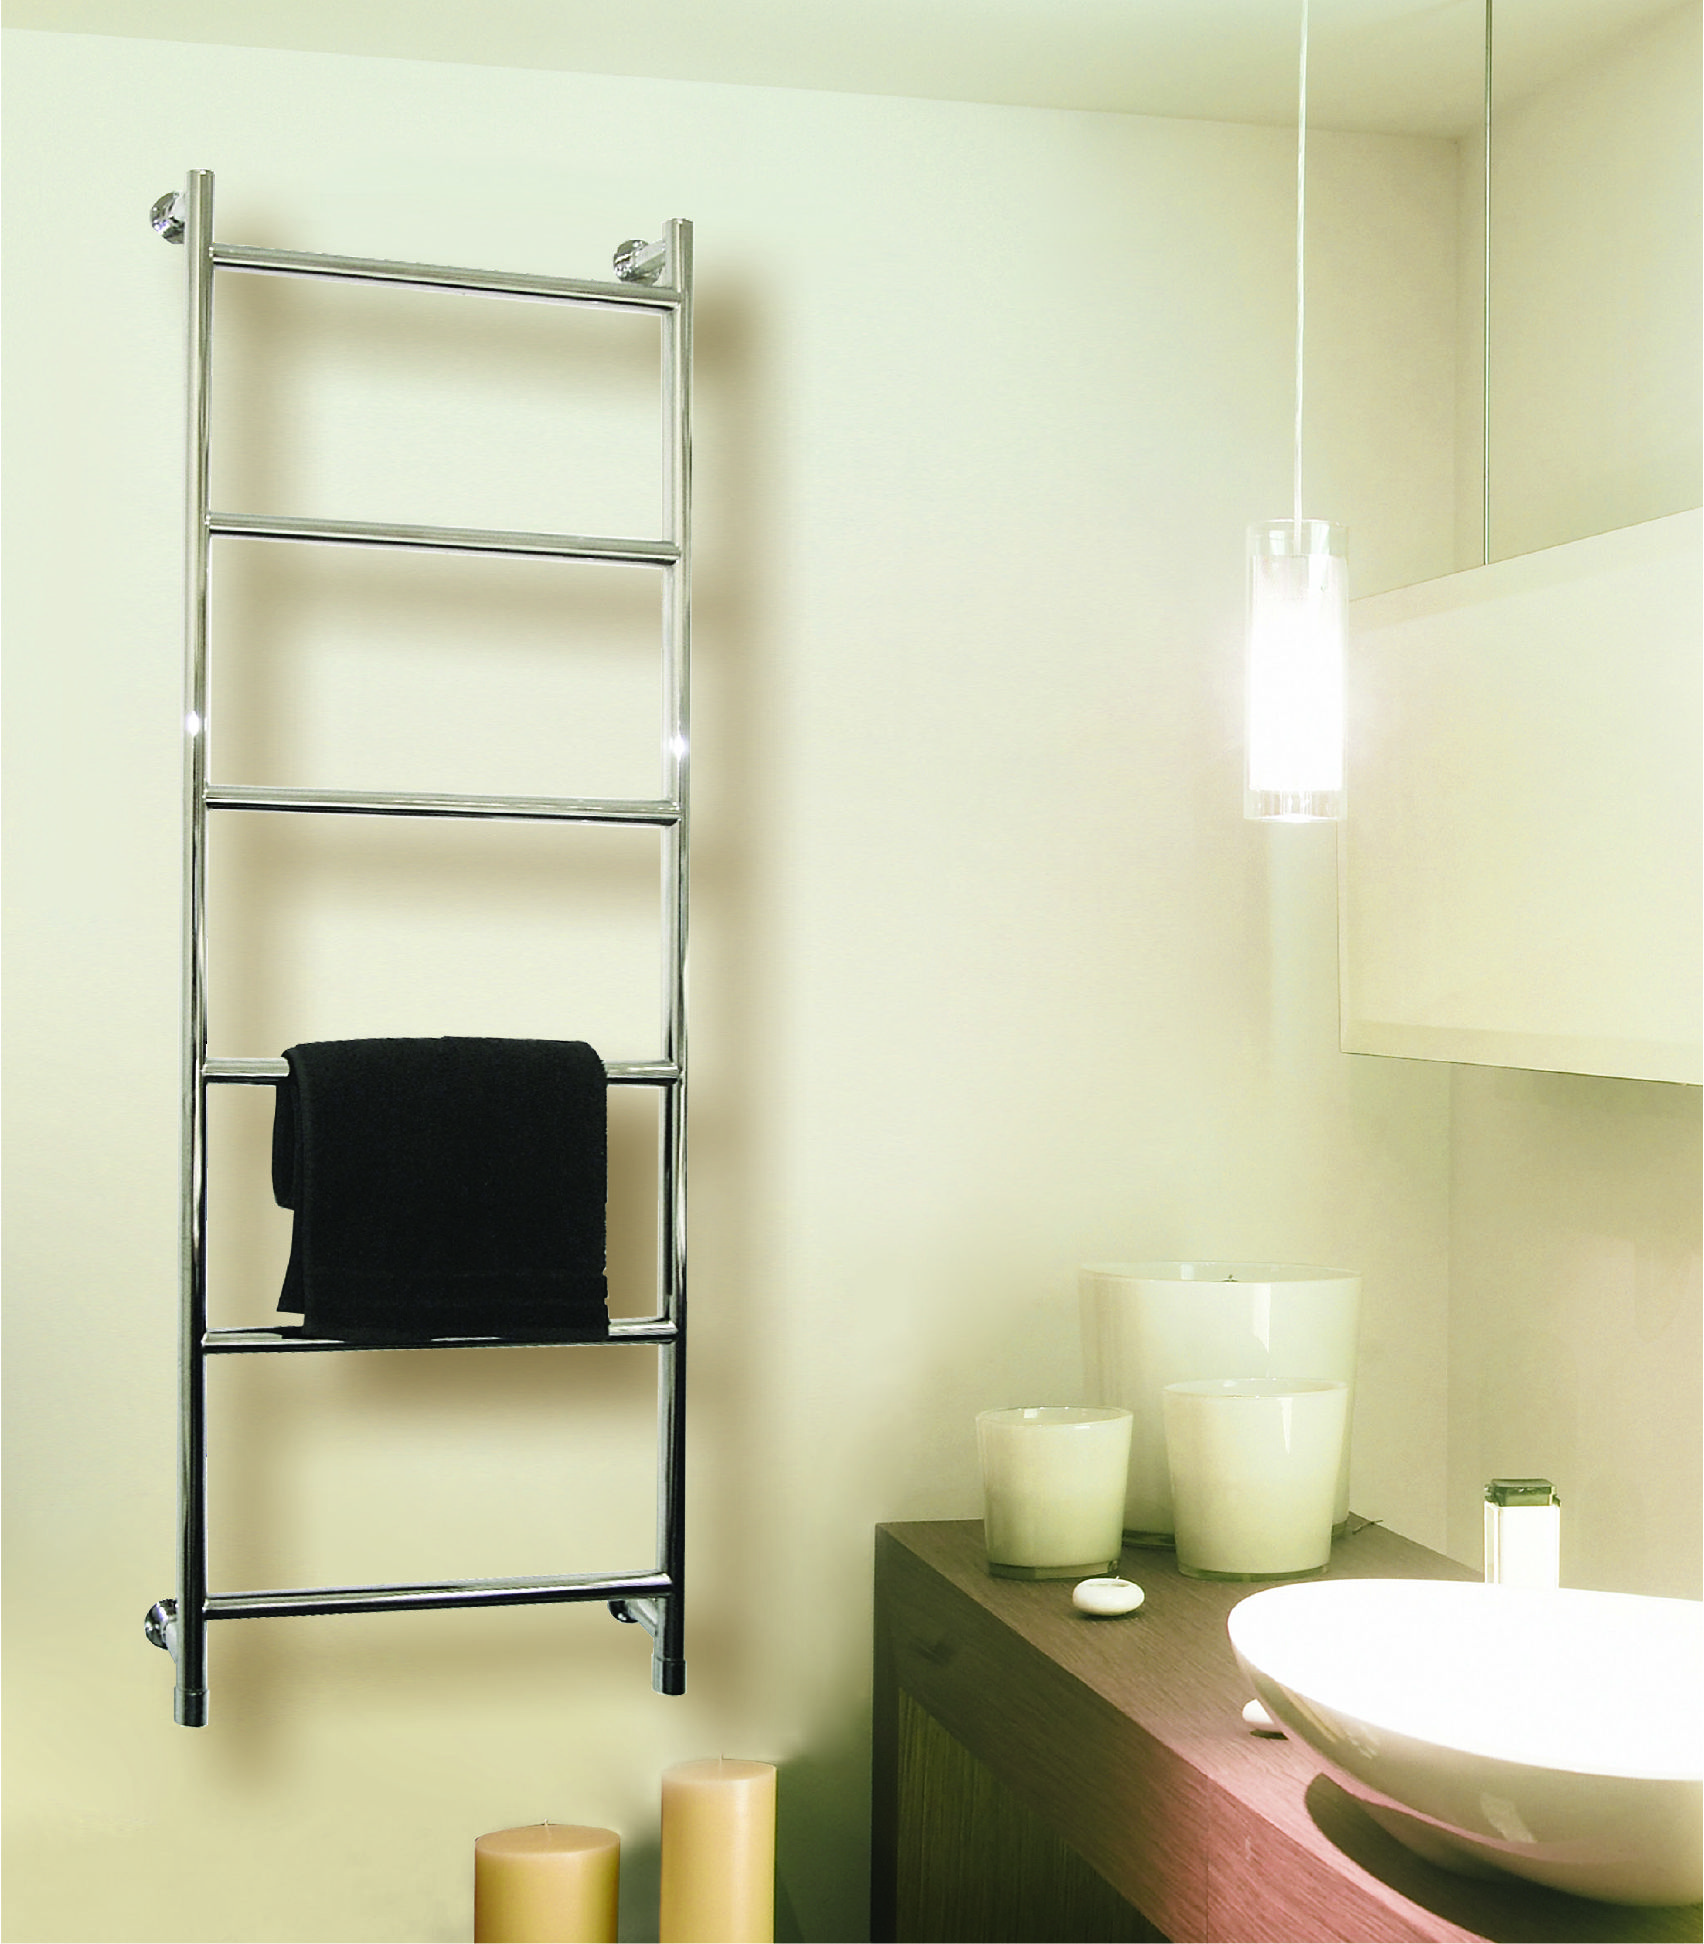 Introducing the Vogue Vivid Heated Towel Rail